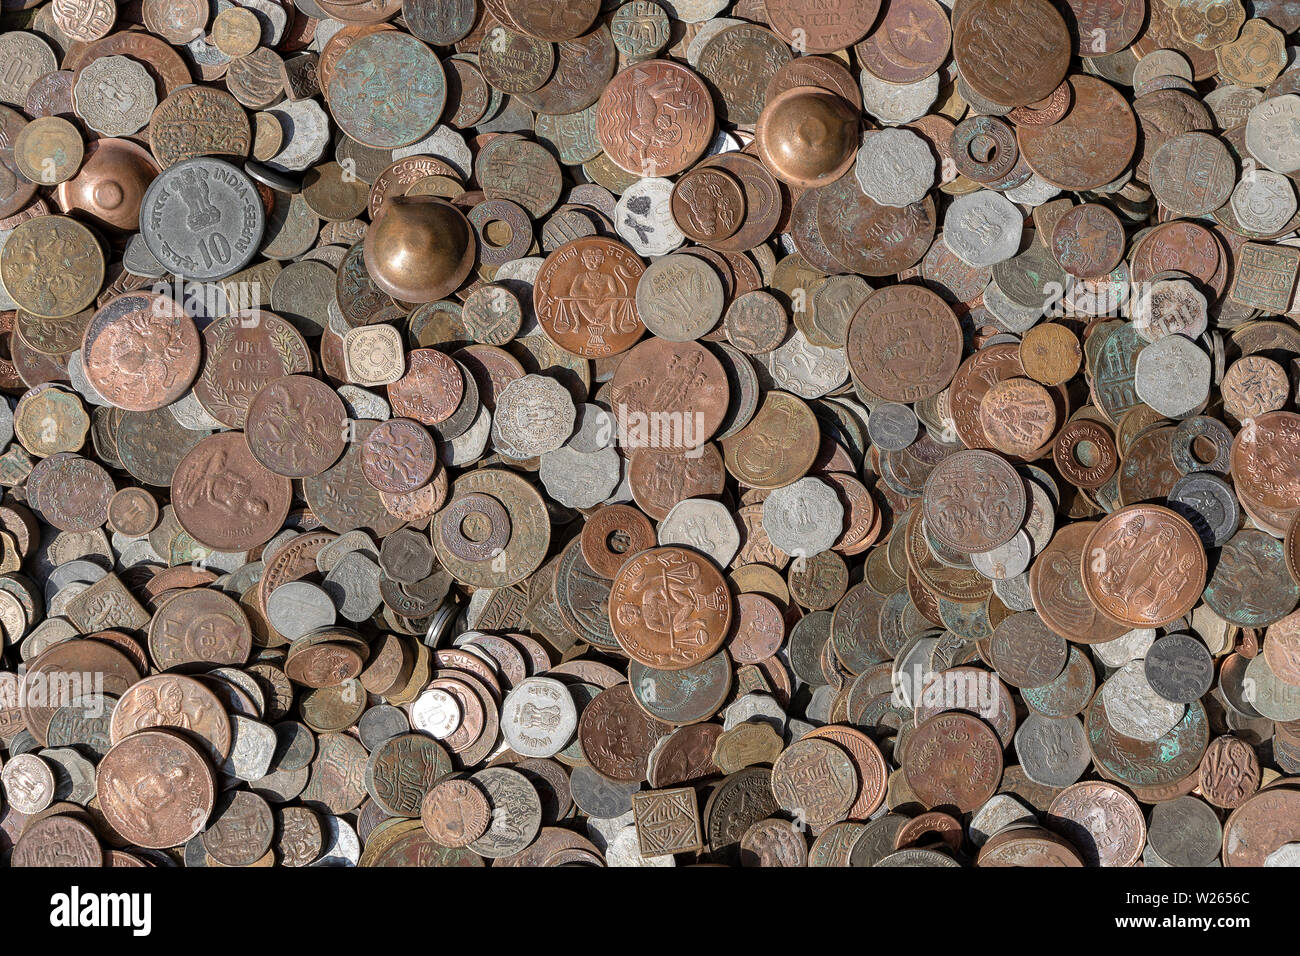 Indian Old Coins Stock Photos & Indian Old Coins Stock